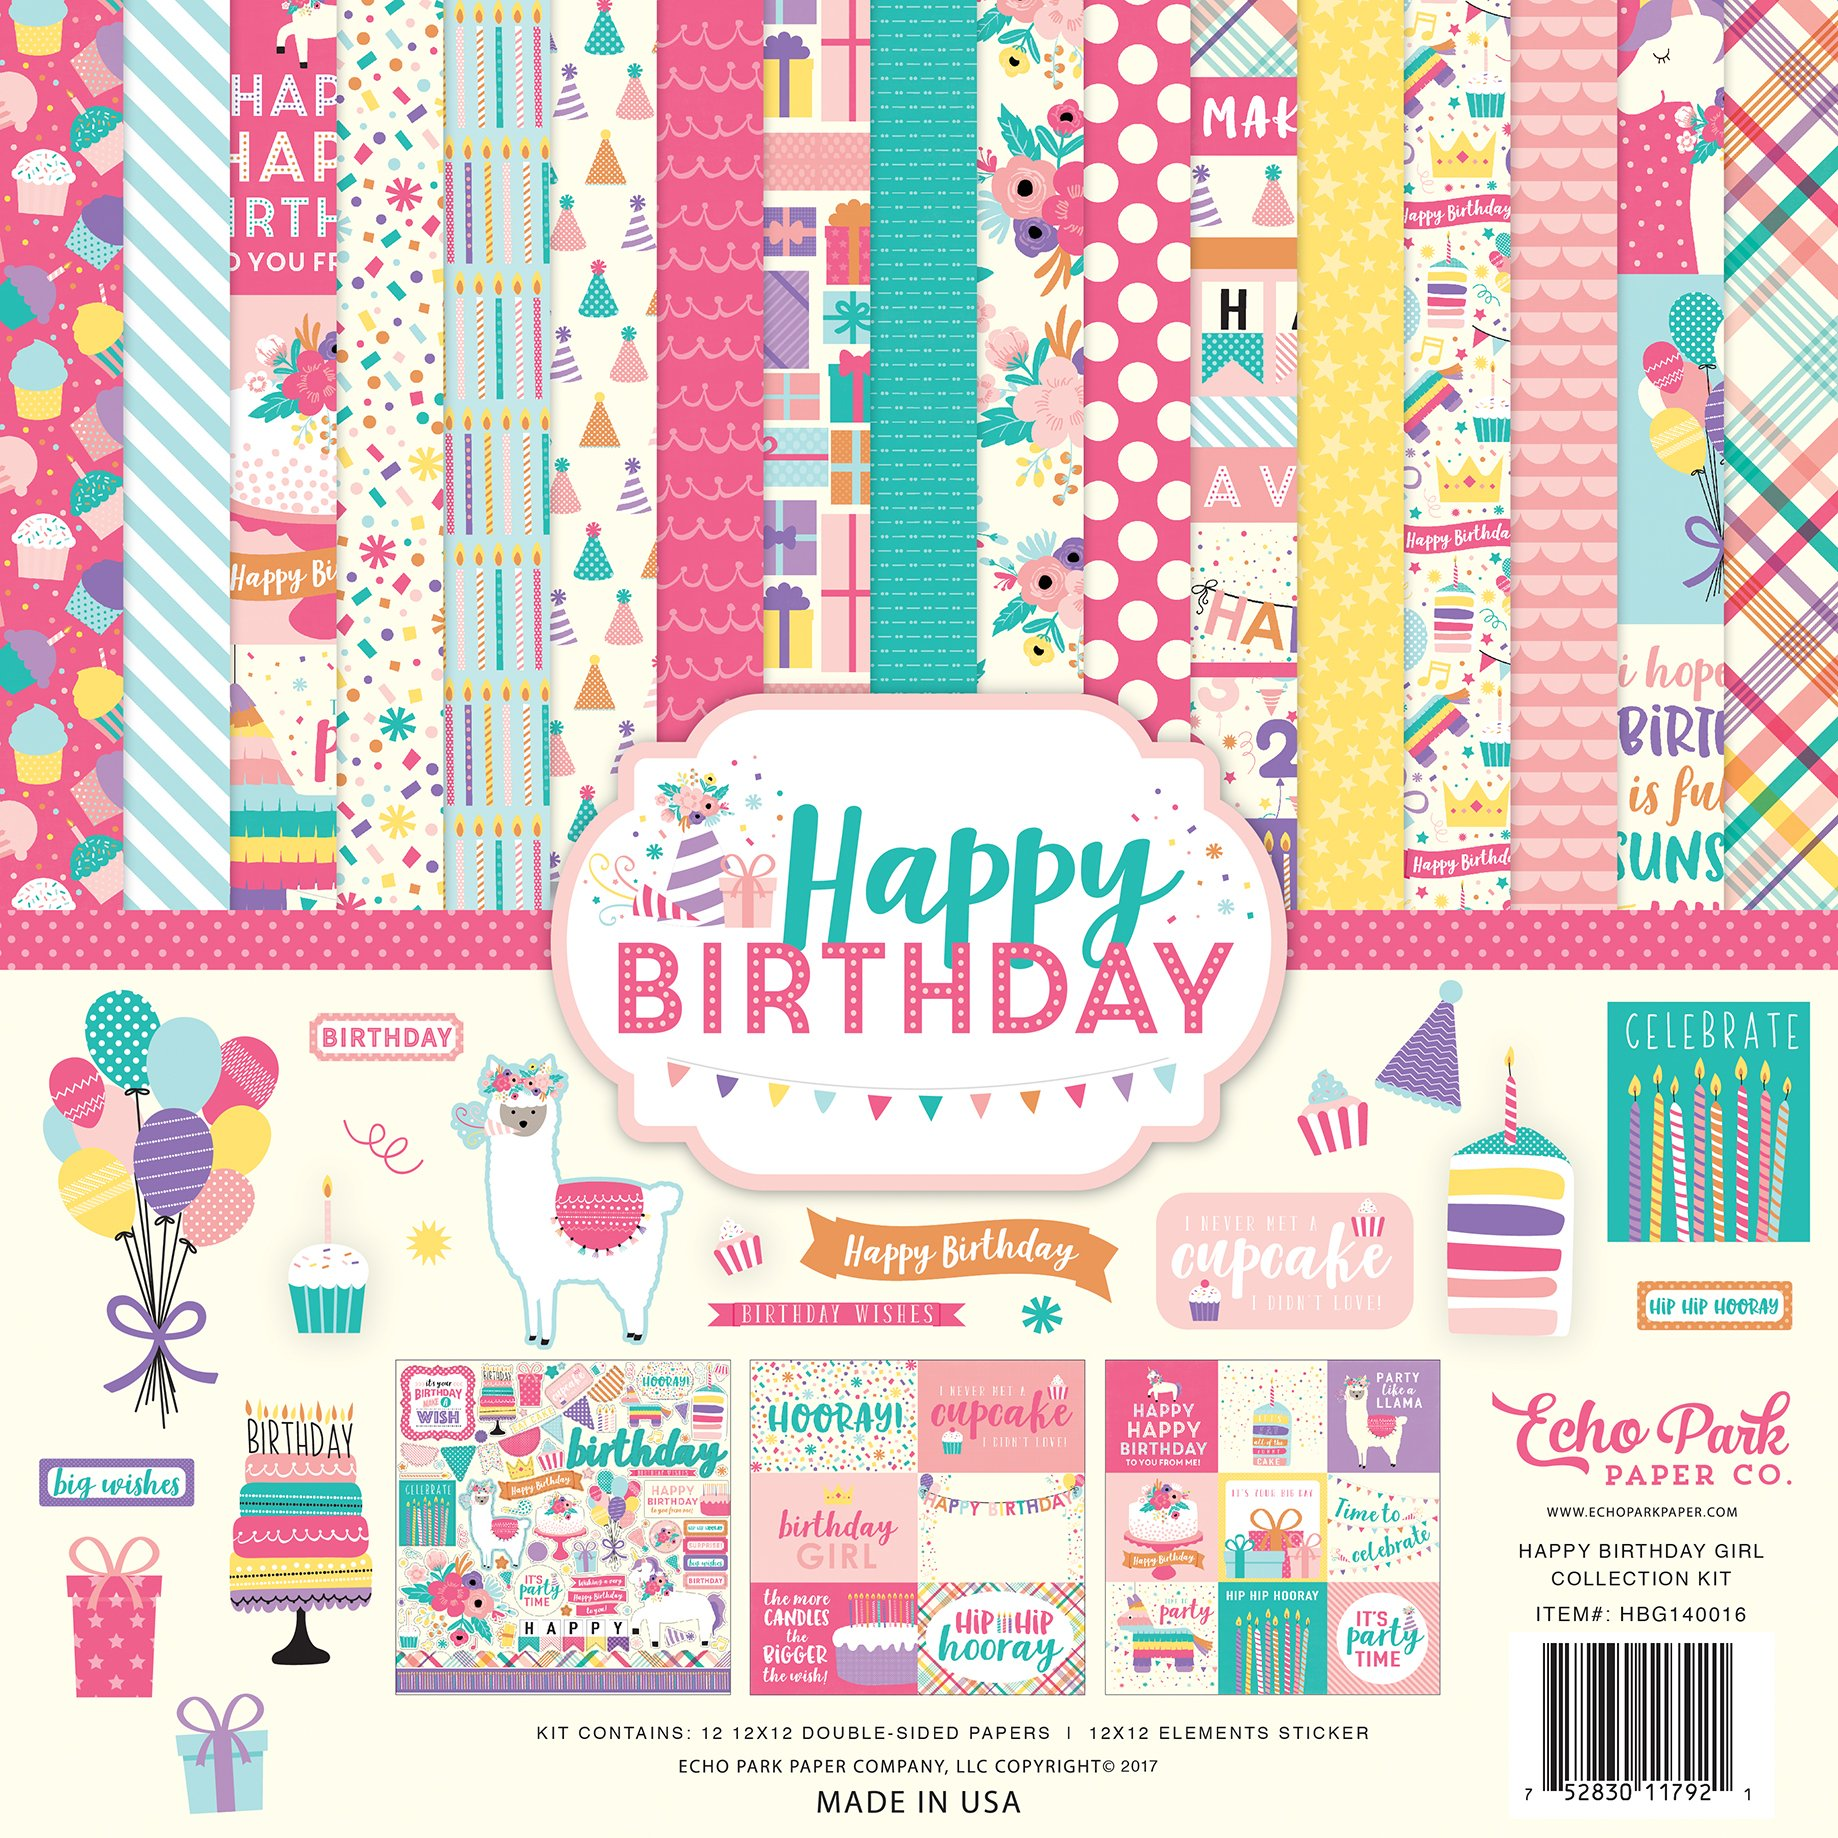 Echo Park Paper Company Happy Birthday Girl Collection Kit